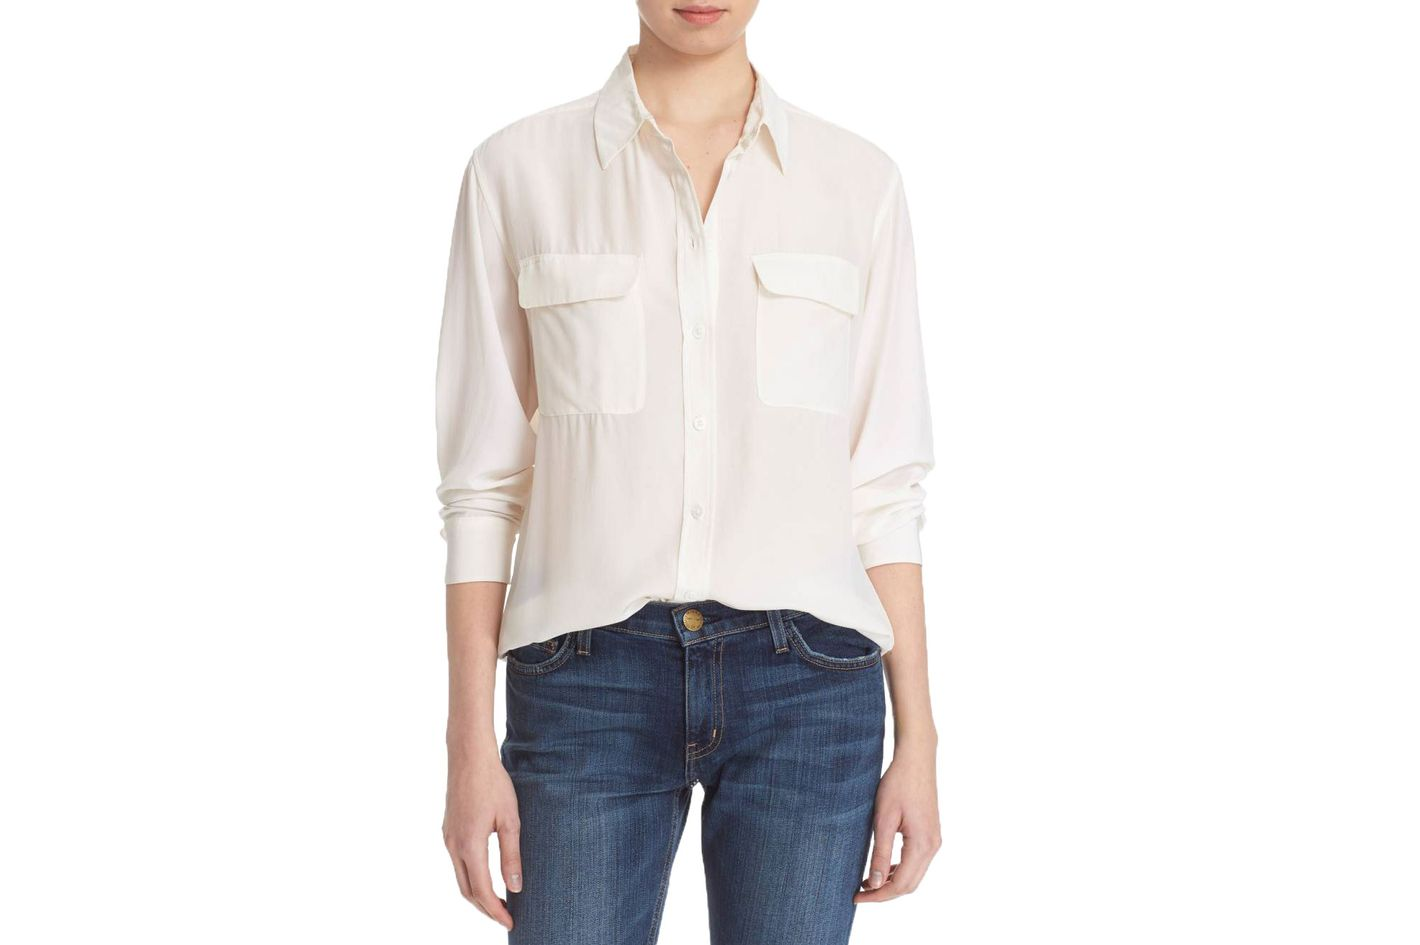 c192535289c744 best white button down for women. Signature Silk Shirt. ""